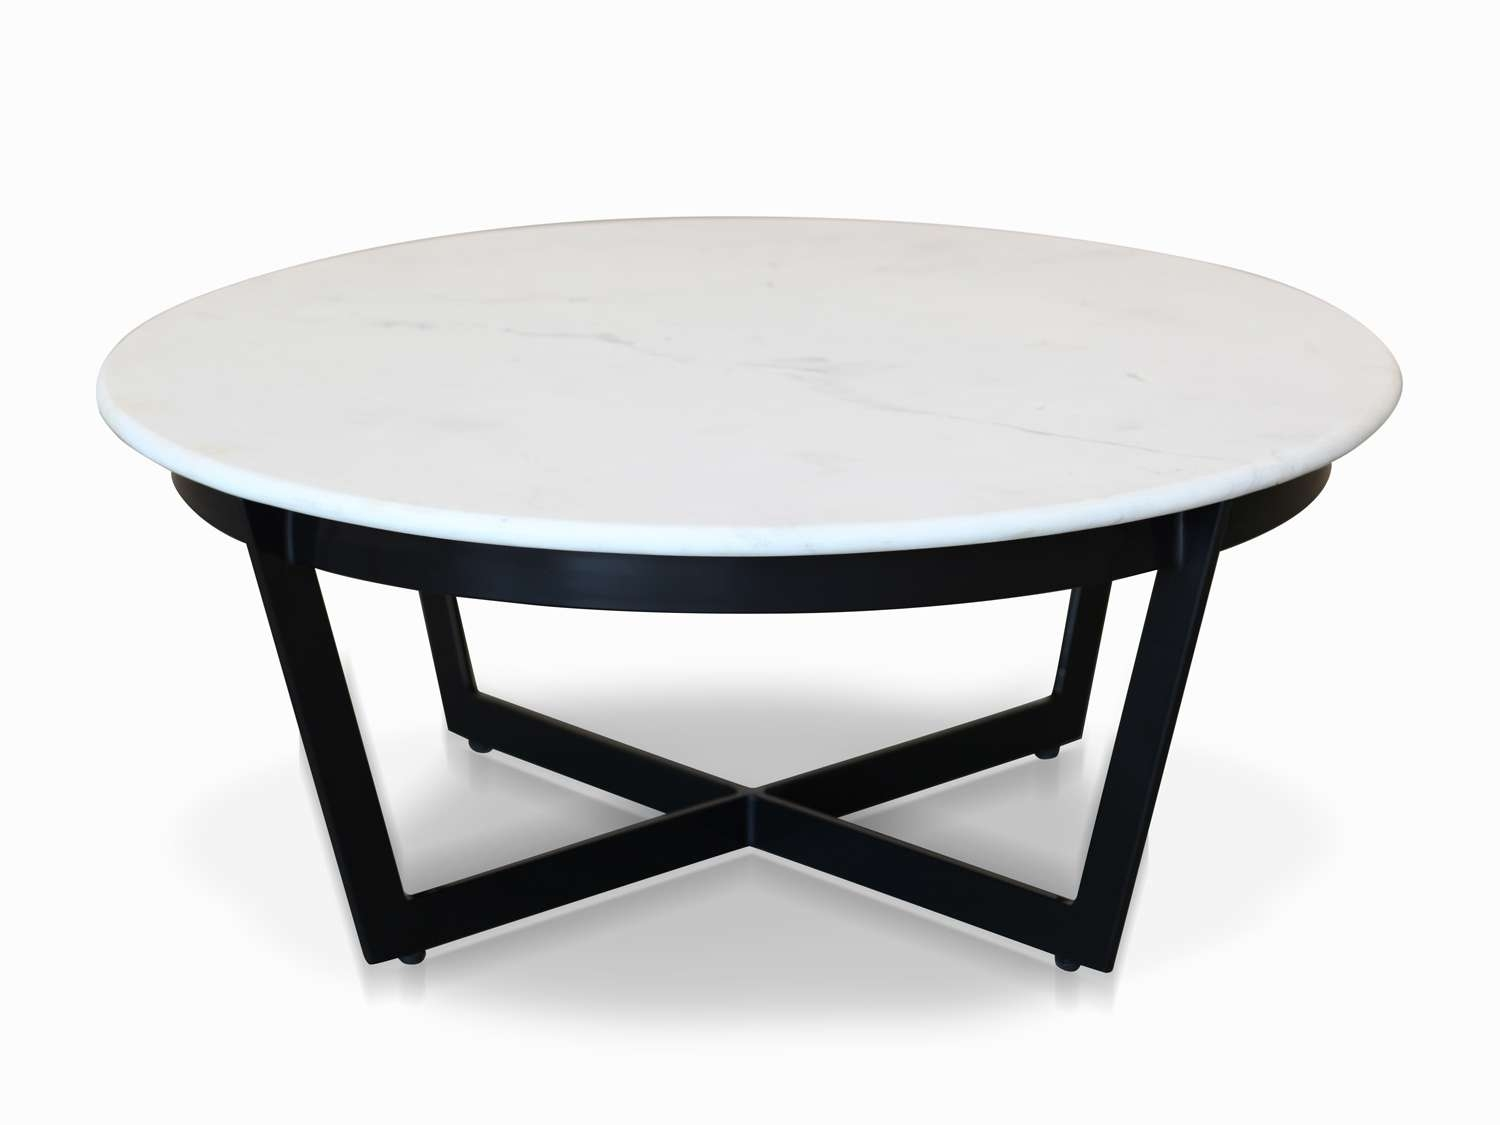 Coffee Table : Coffee Table Round Marble Carrara White Tableround Throughout Most Current White Marble Coffee Tables (View 5 of 20)